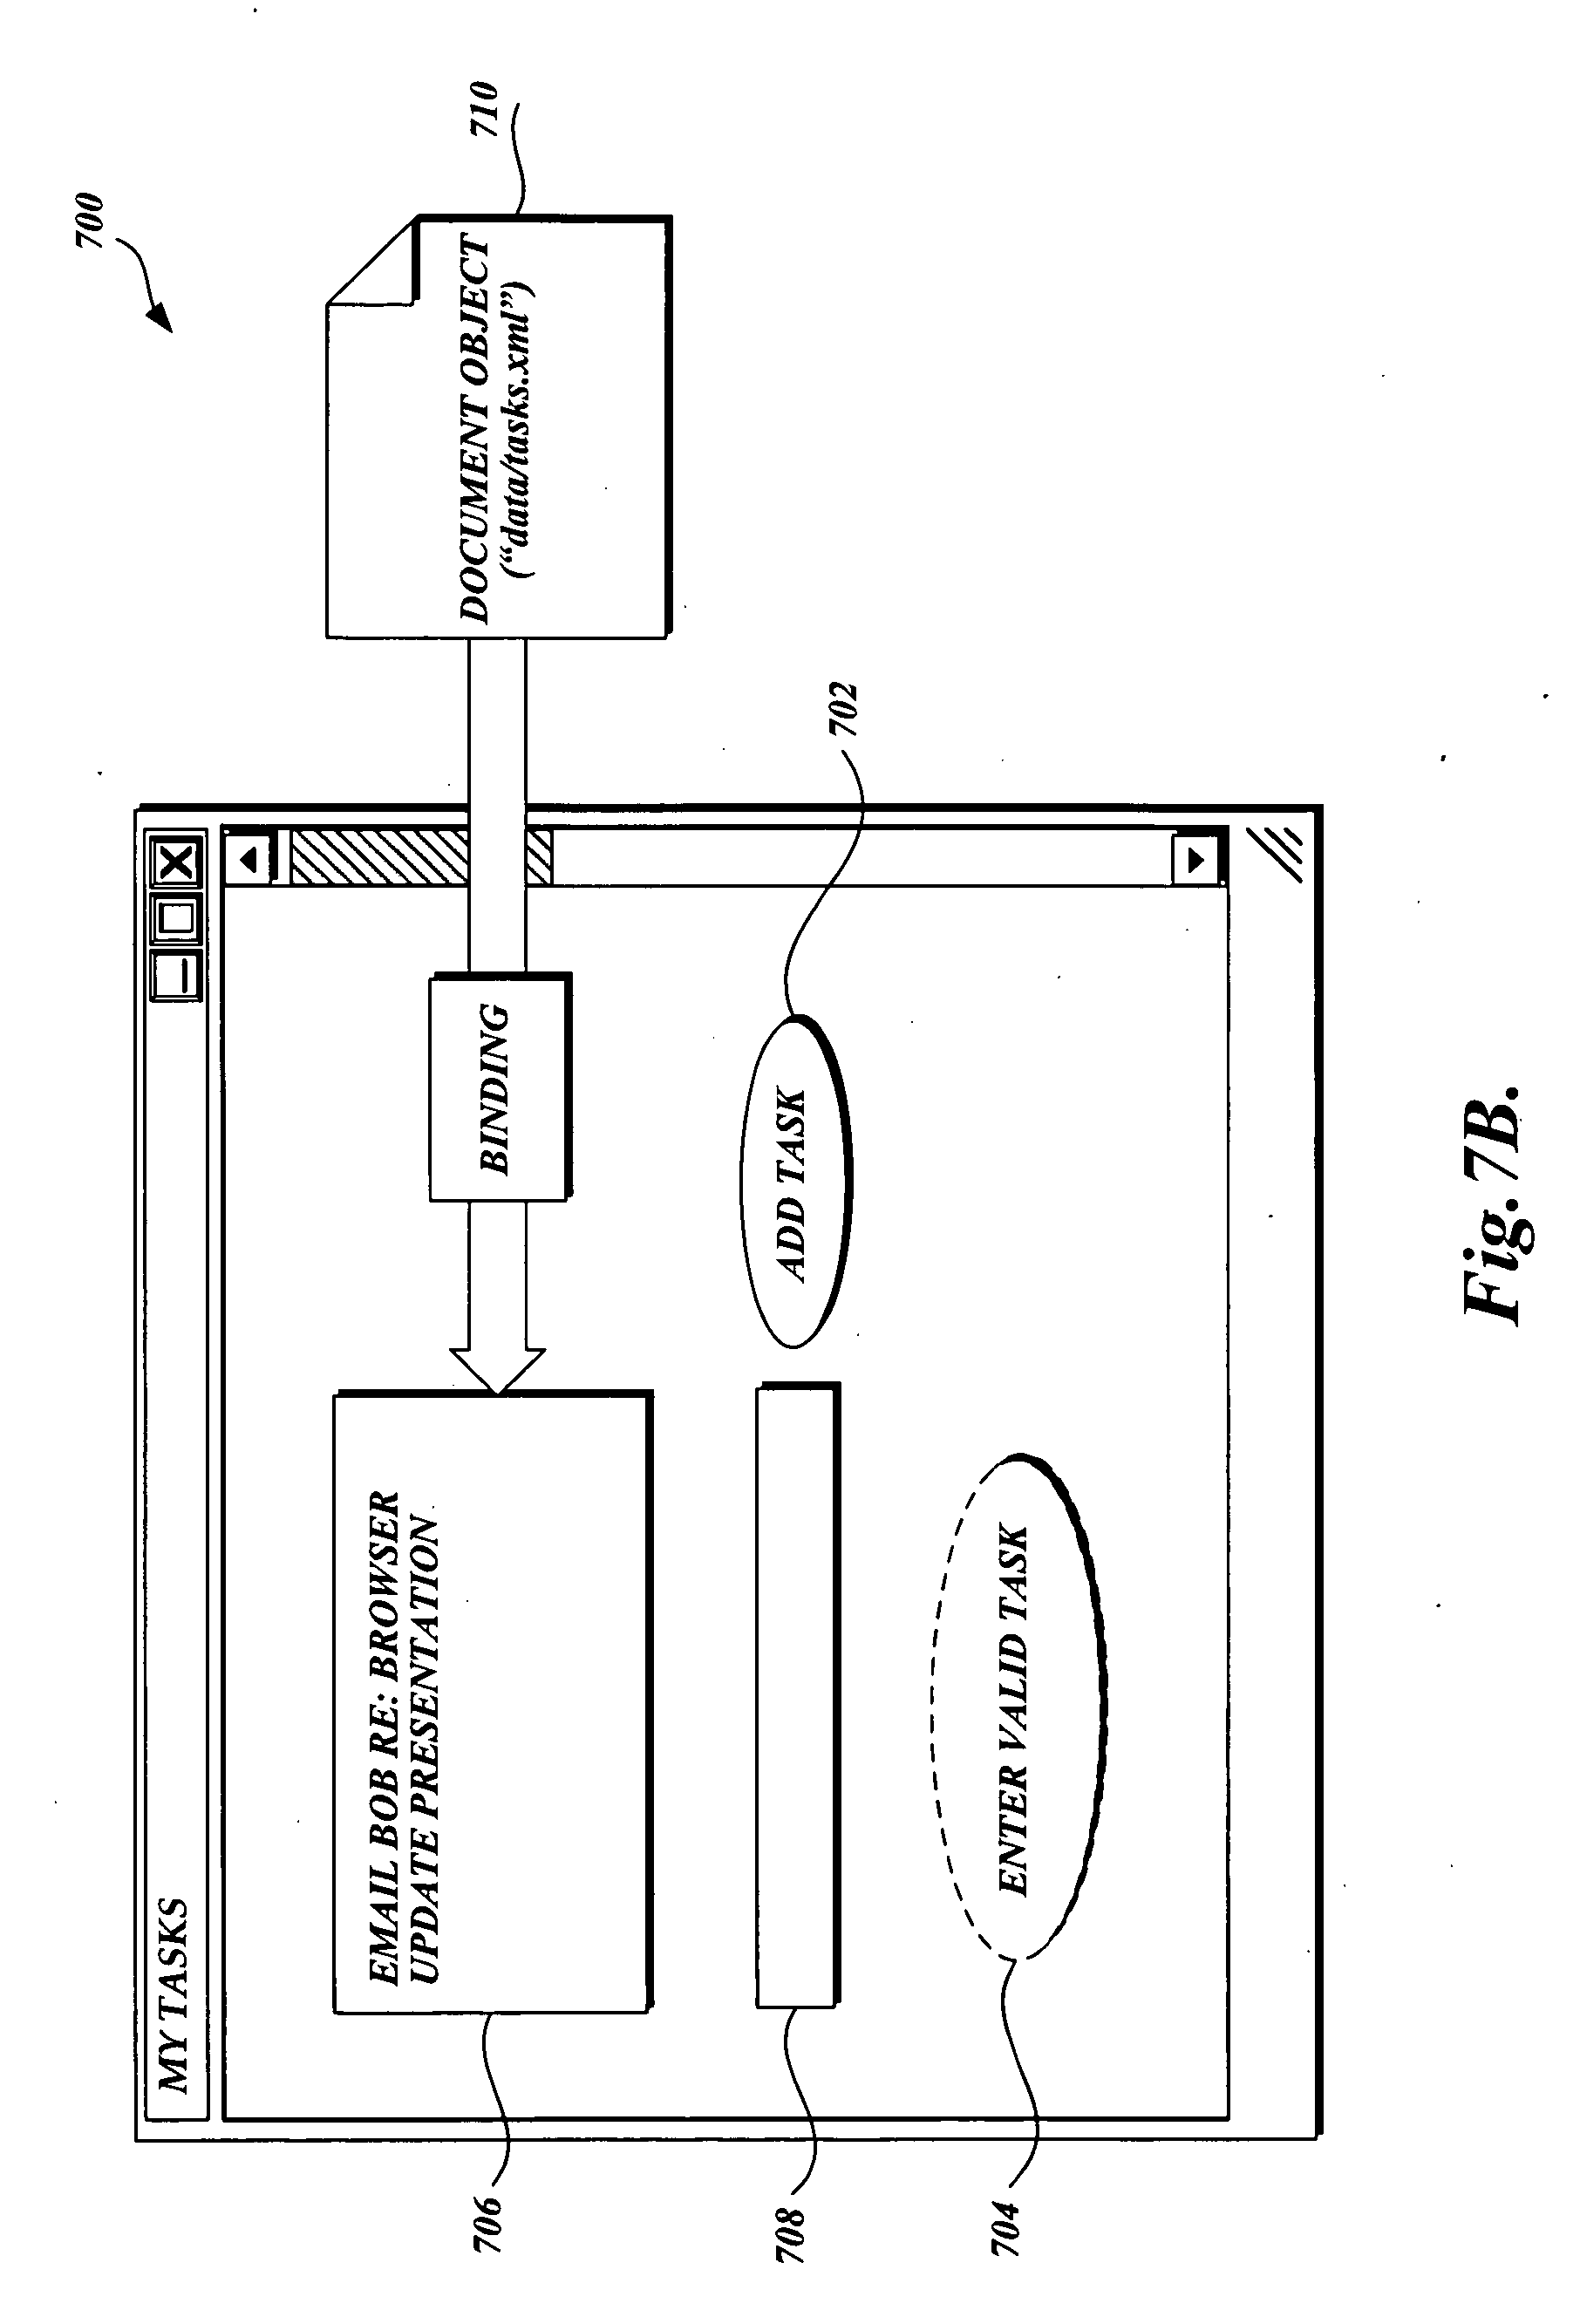 patent us20090171993 network operating system google patents